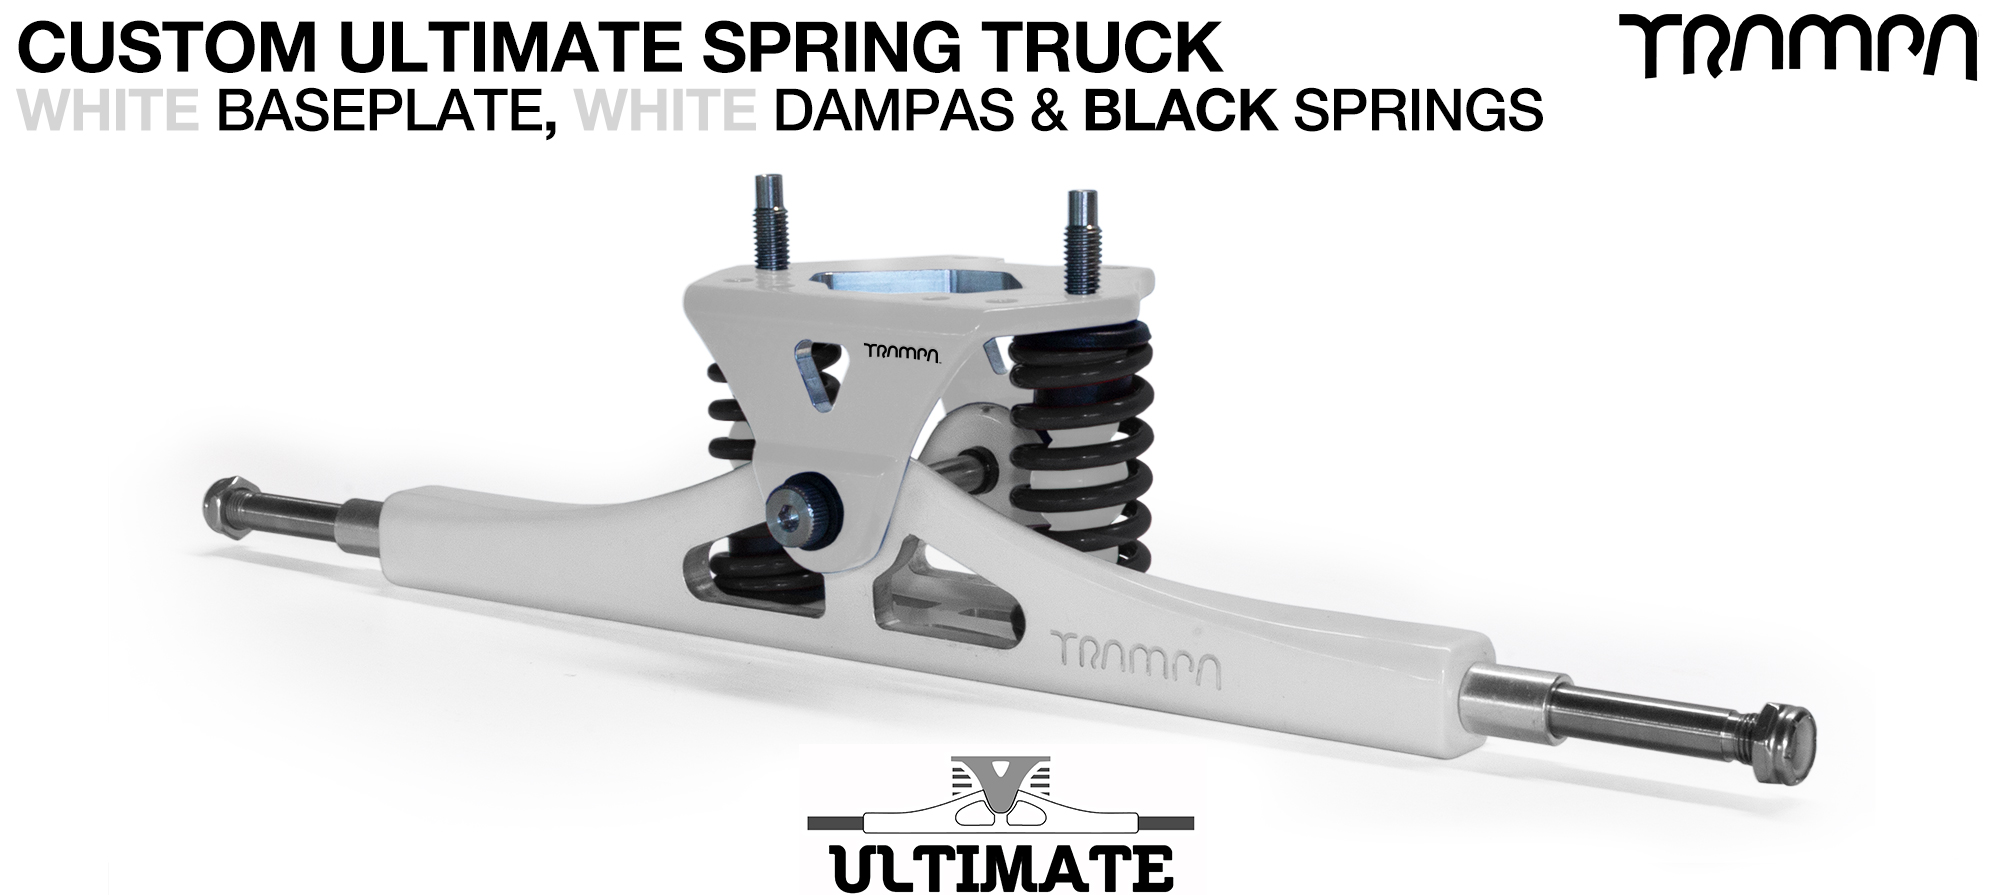 ULTIMATE ATB TRUCK - WHITE ATB Hanger with TITANIUM Axles & Kingpin & WHITE with BLACK logo Baseplate